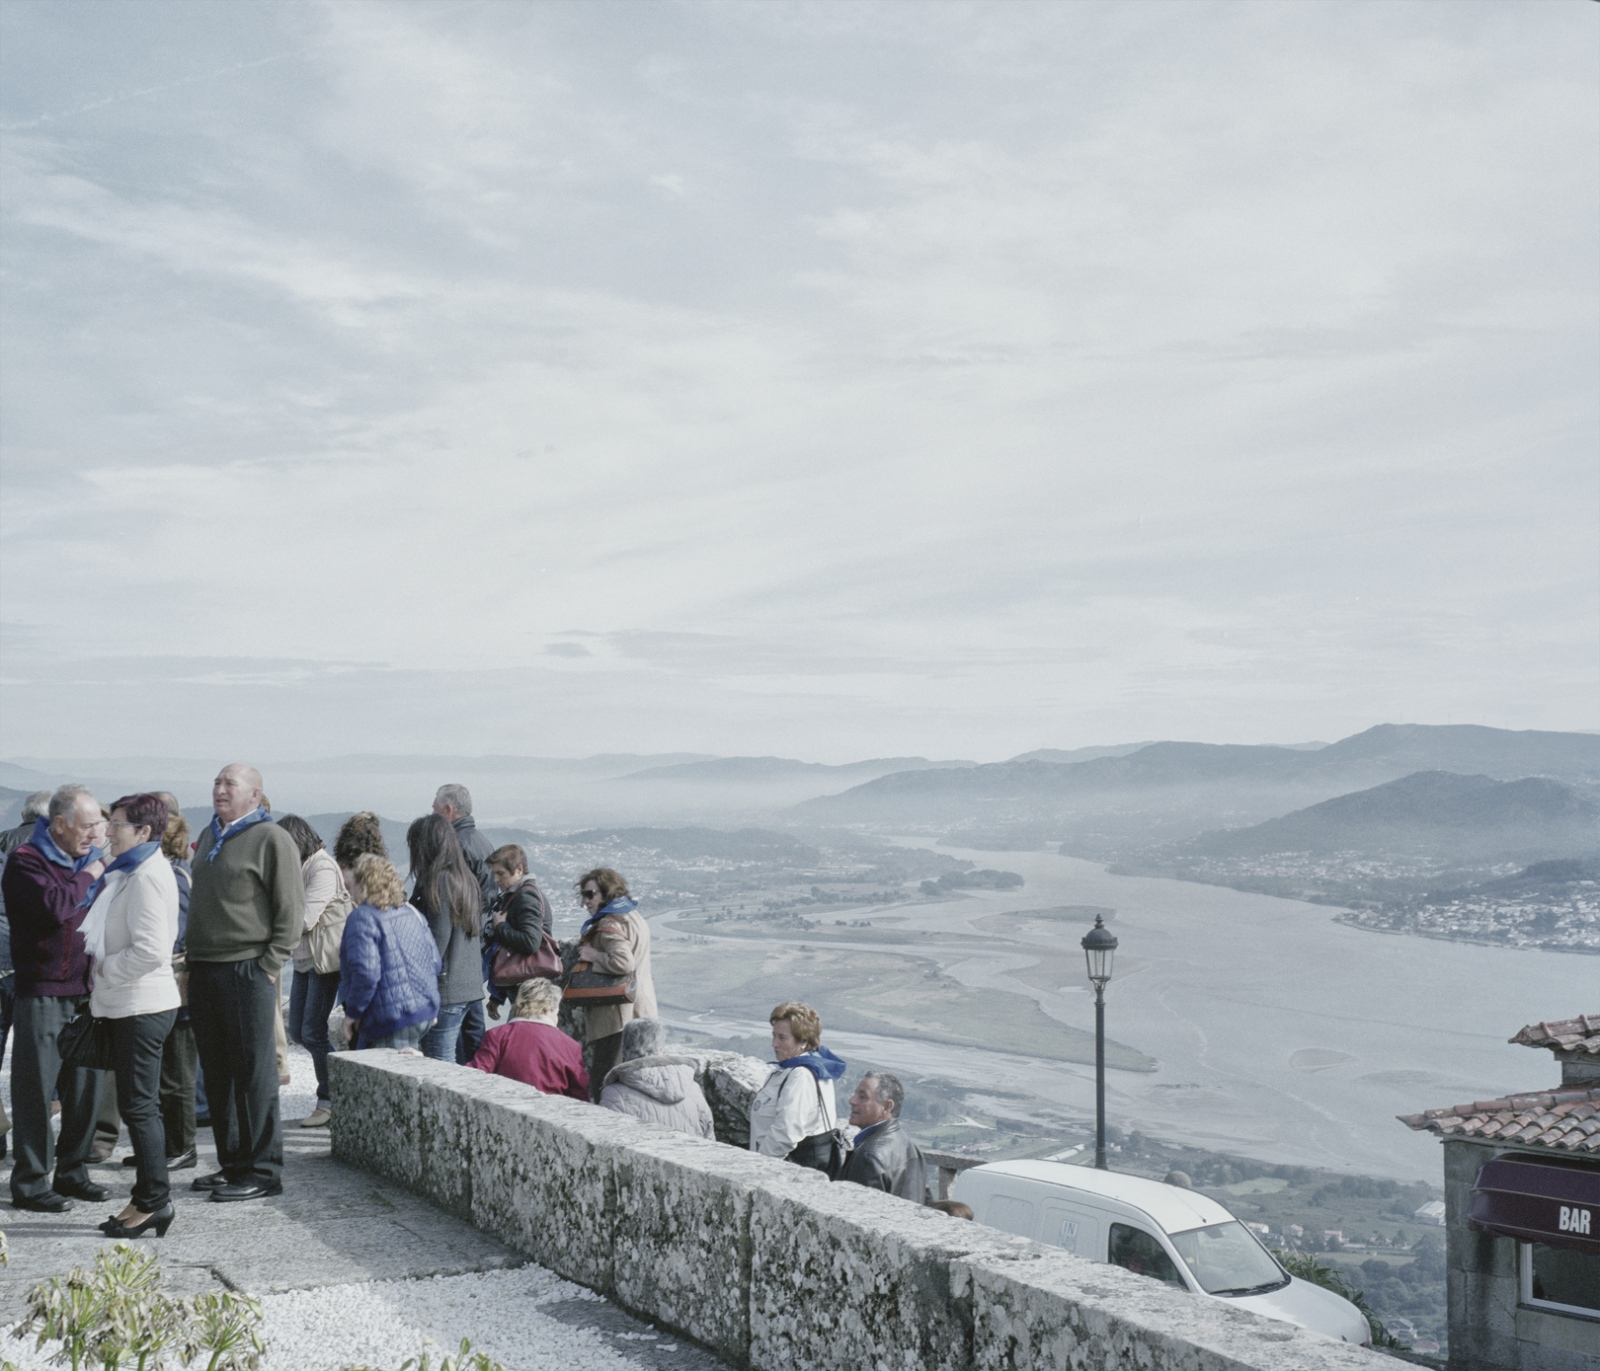 Spain, A Gurada. Tourists visit a catholic sanctuary on the Spanish side of the Minho river.